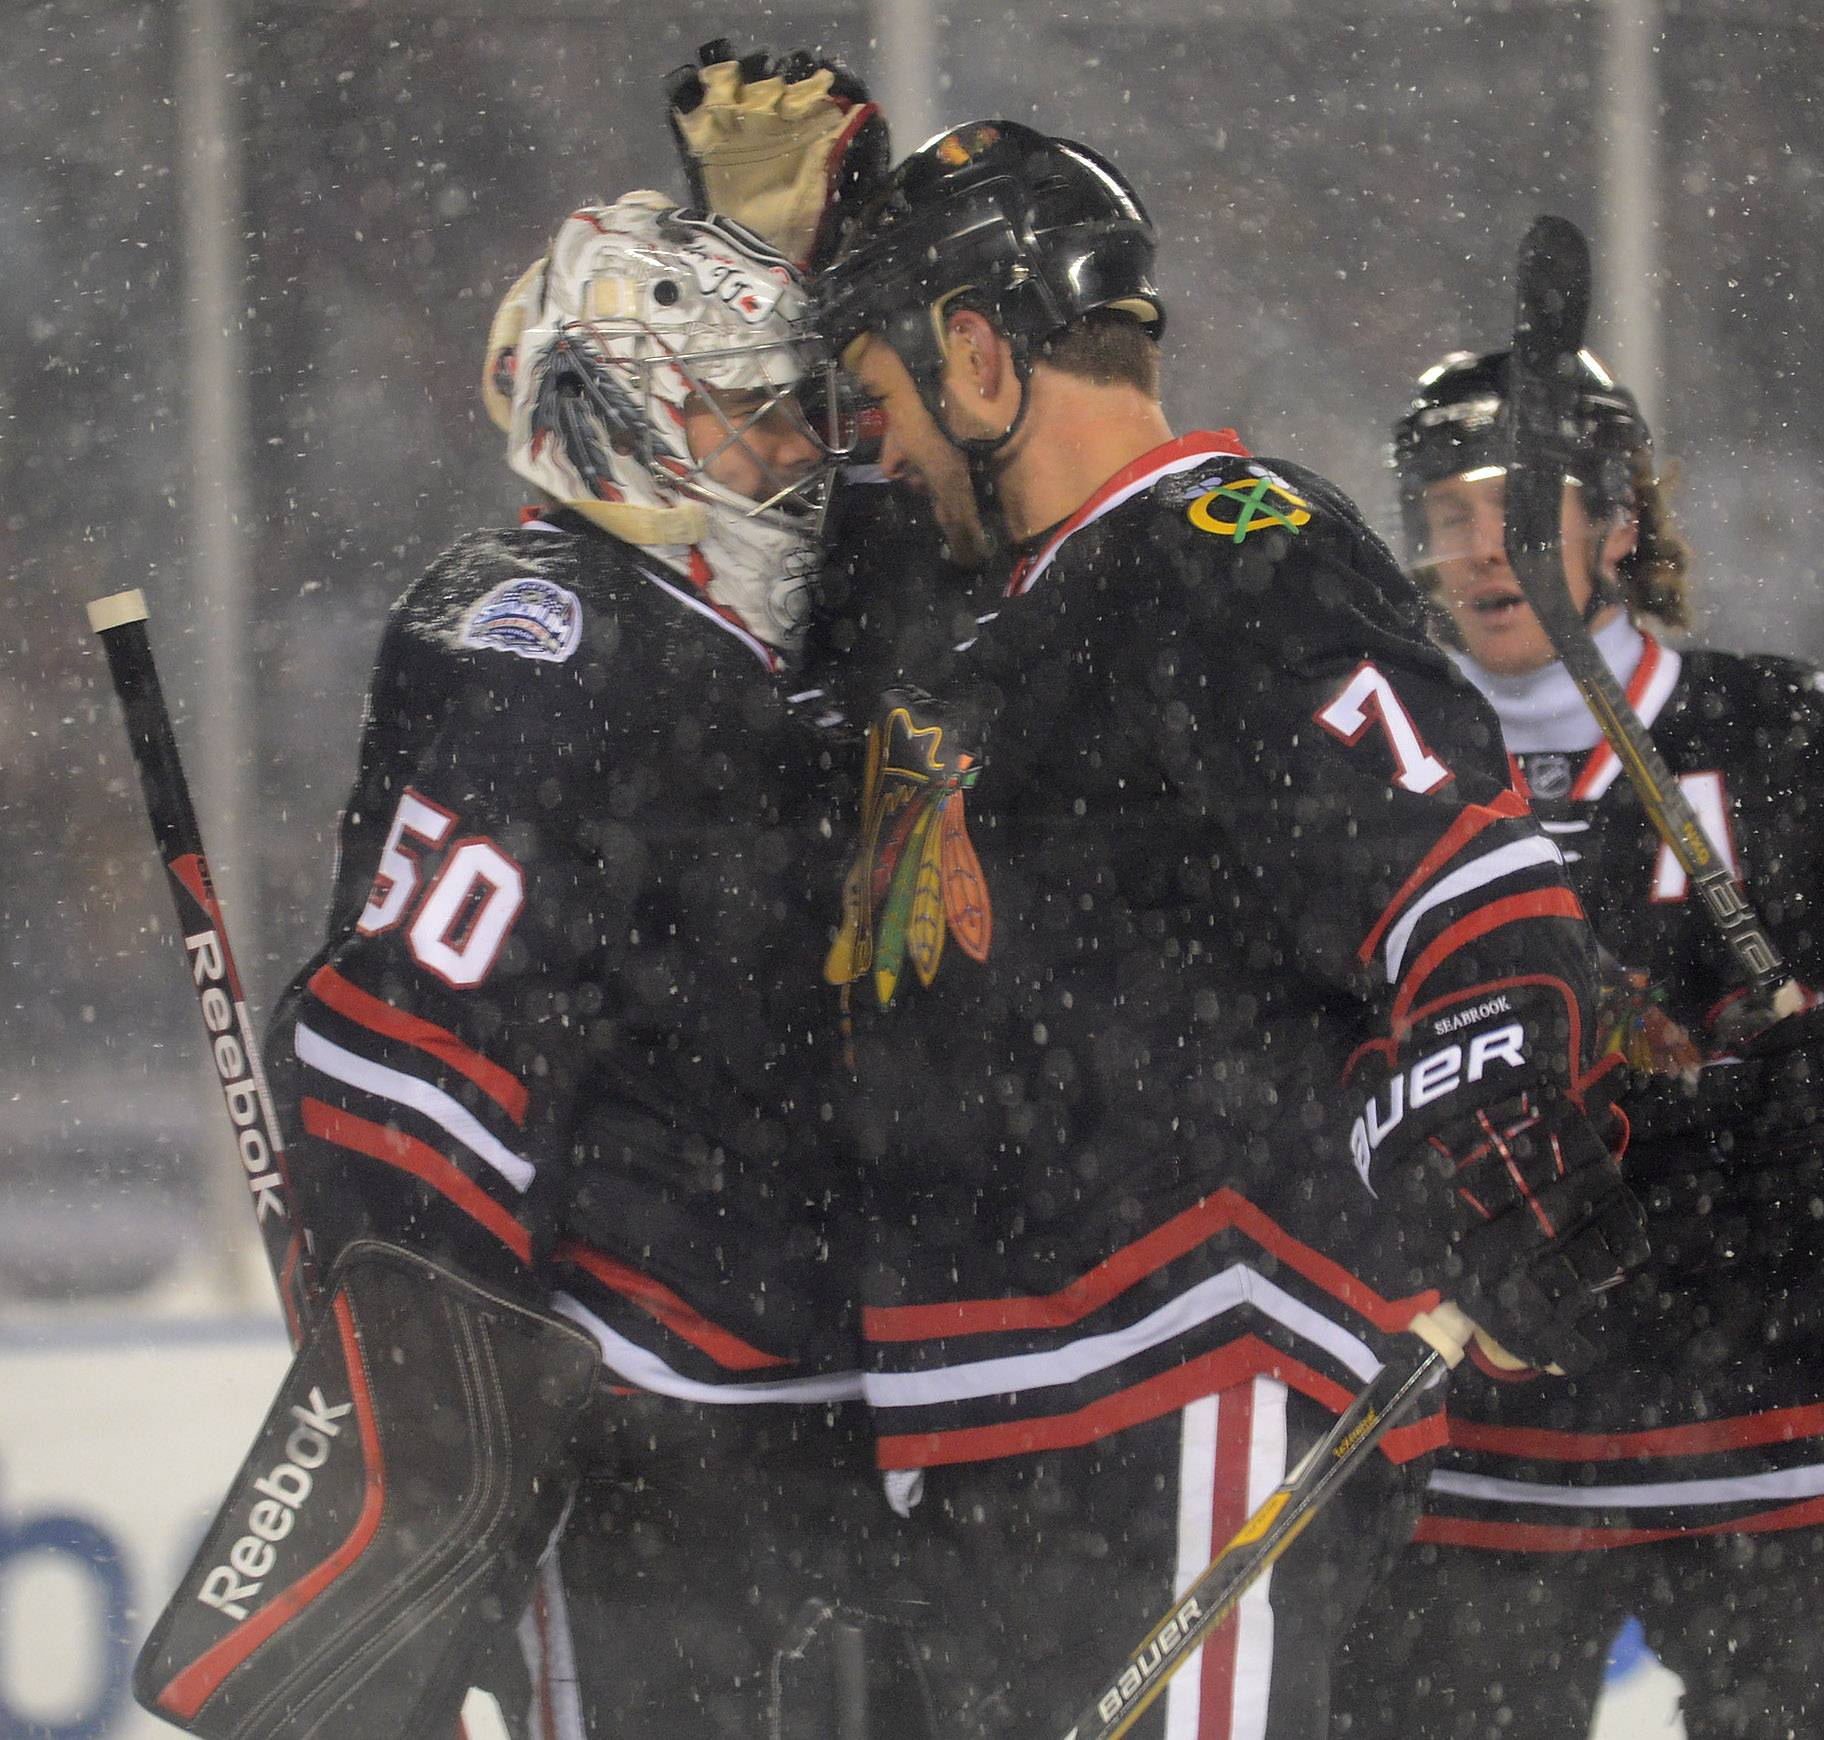 Chicago Blackhawks goalie Corey Crawford is congratulated by Chicago Blackhawks defenseman Brent Seabrook at the end of Saturday's Coors Light Stadium Series game at Soldier Field between the Blackhawks and Pittsburgh Penguins.